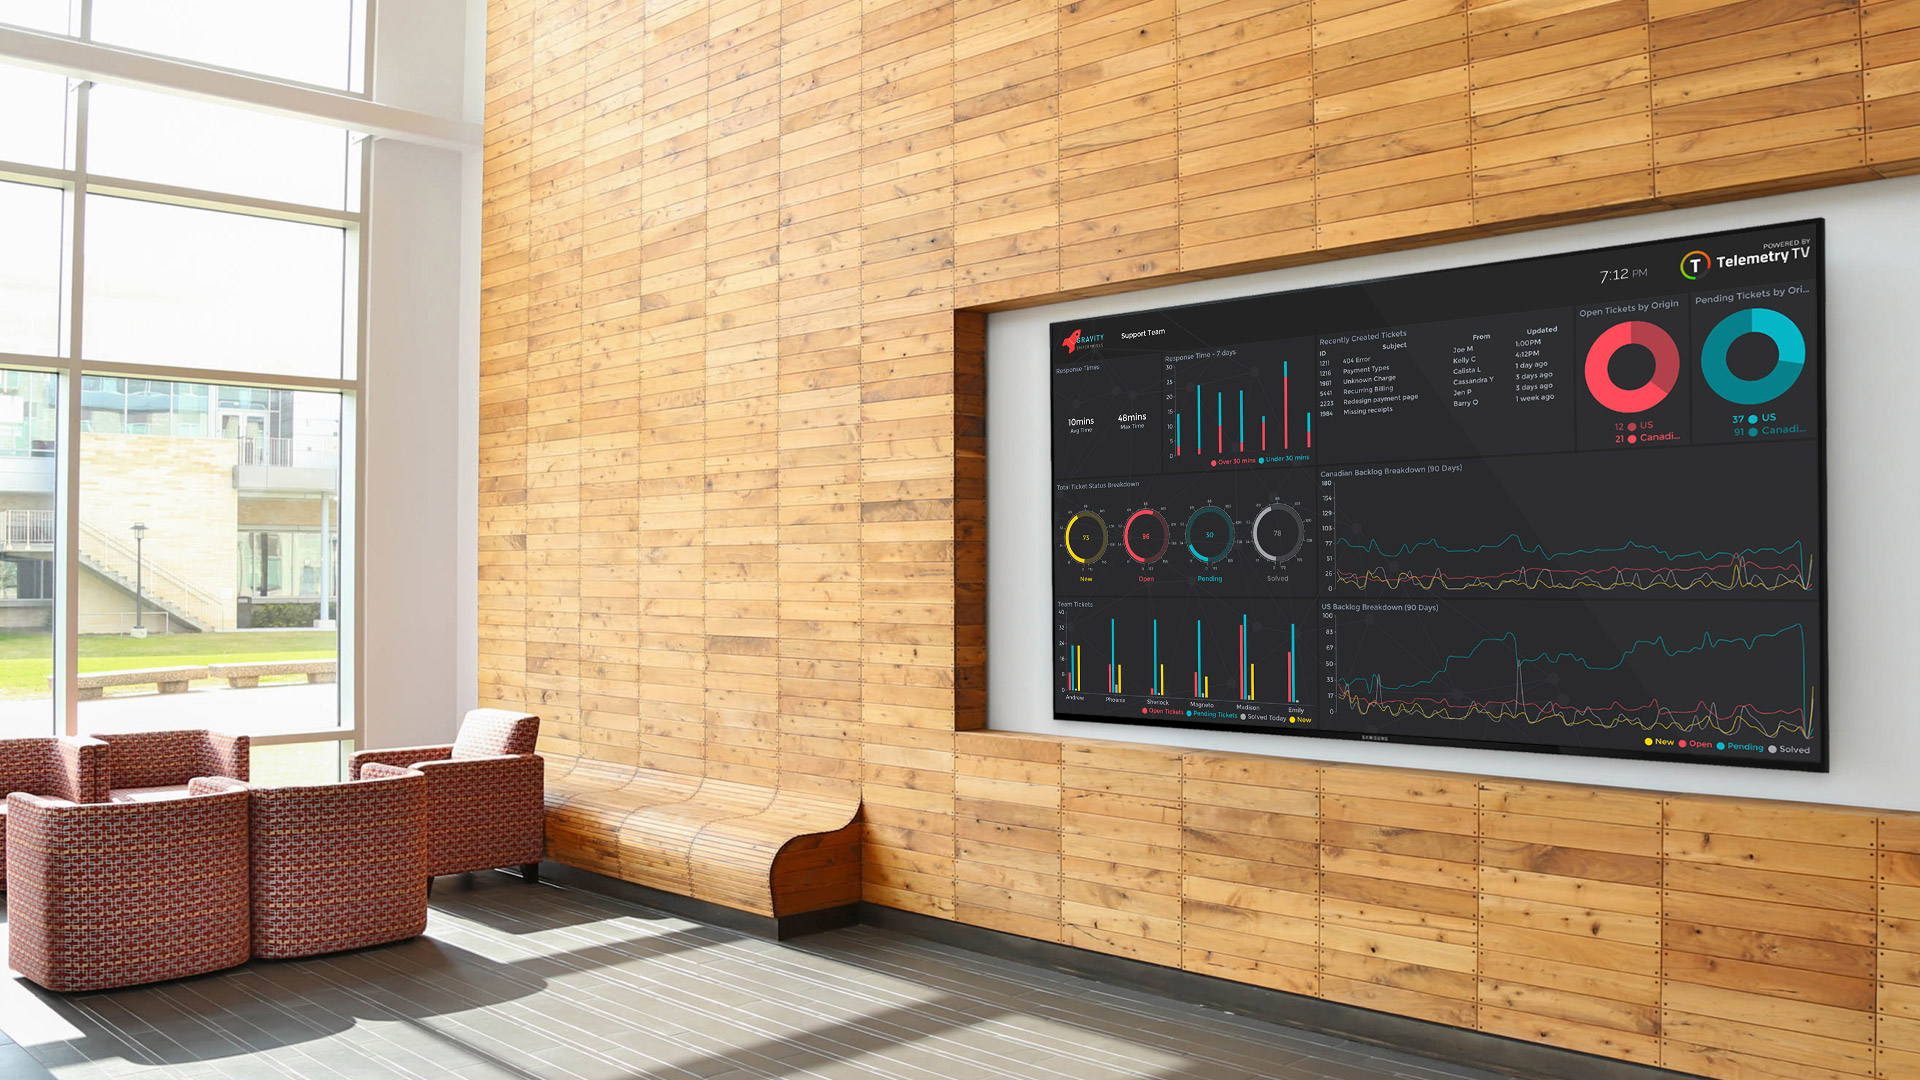 6 of the Best Screens for Digital Signage in 2019